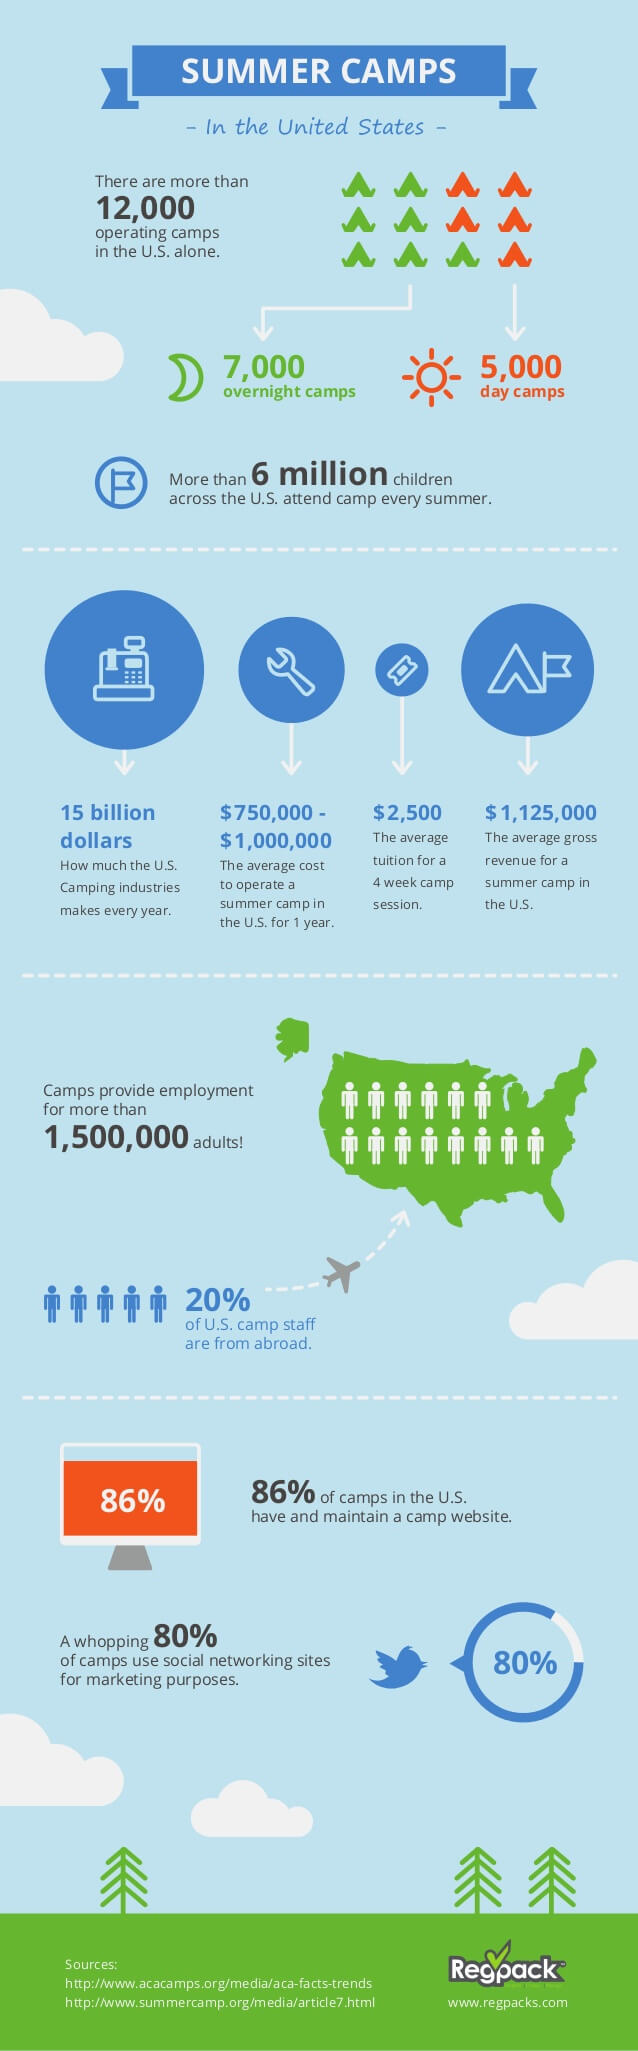 Amazing facts about summer camps in the US.